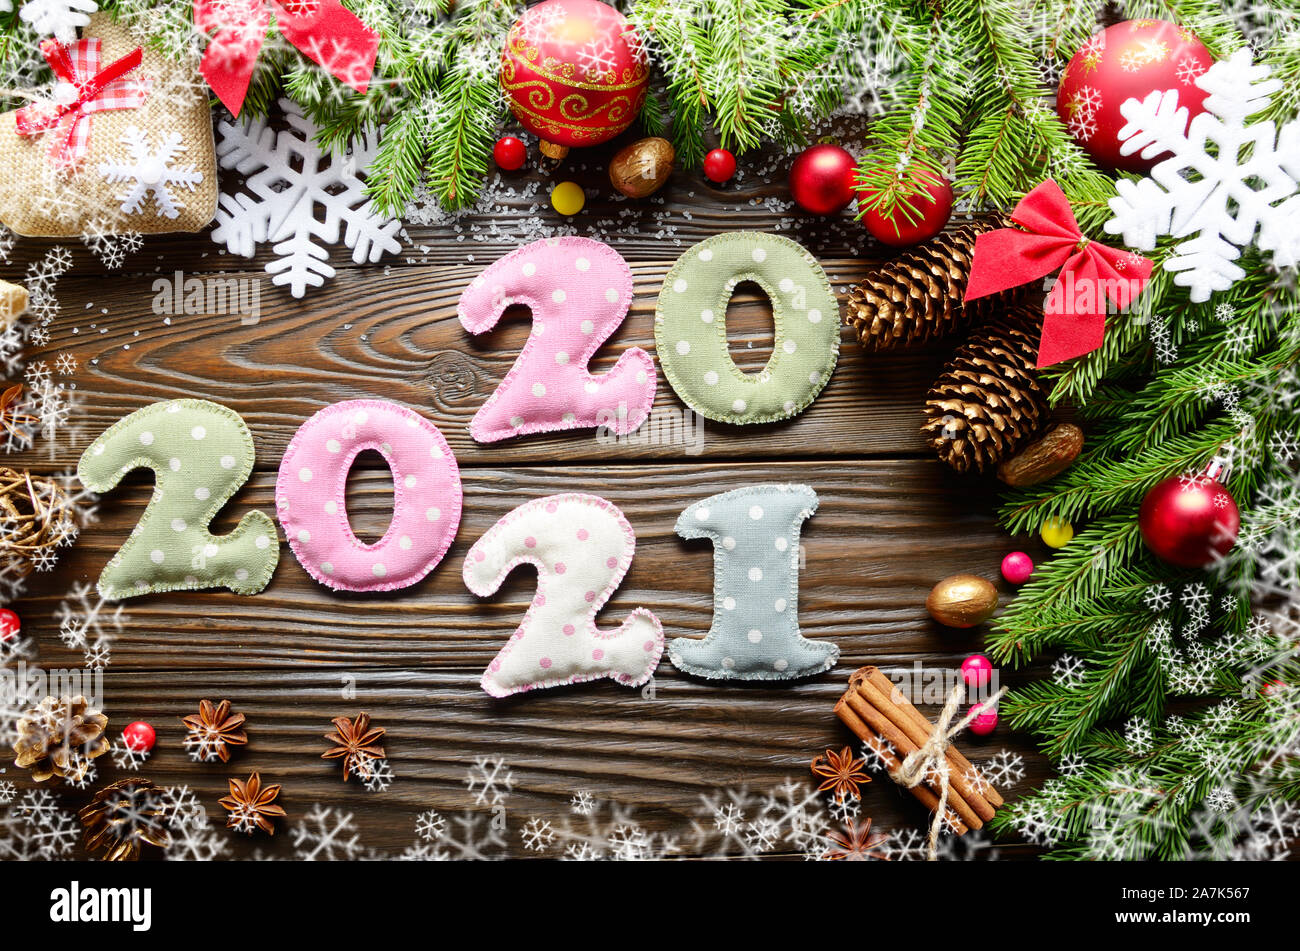 Christmas Fabric 2021 Release Colorful Stitched Digits 2020 2021 Of Polkadot Fabric With Christmas Decorations Flat Lay On Wooden Background Stock Photo Alamy